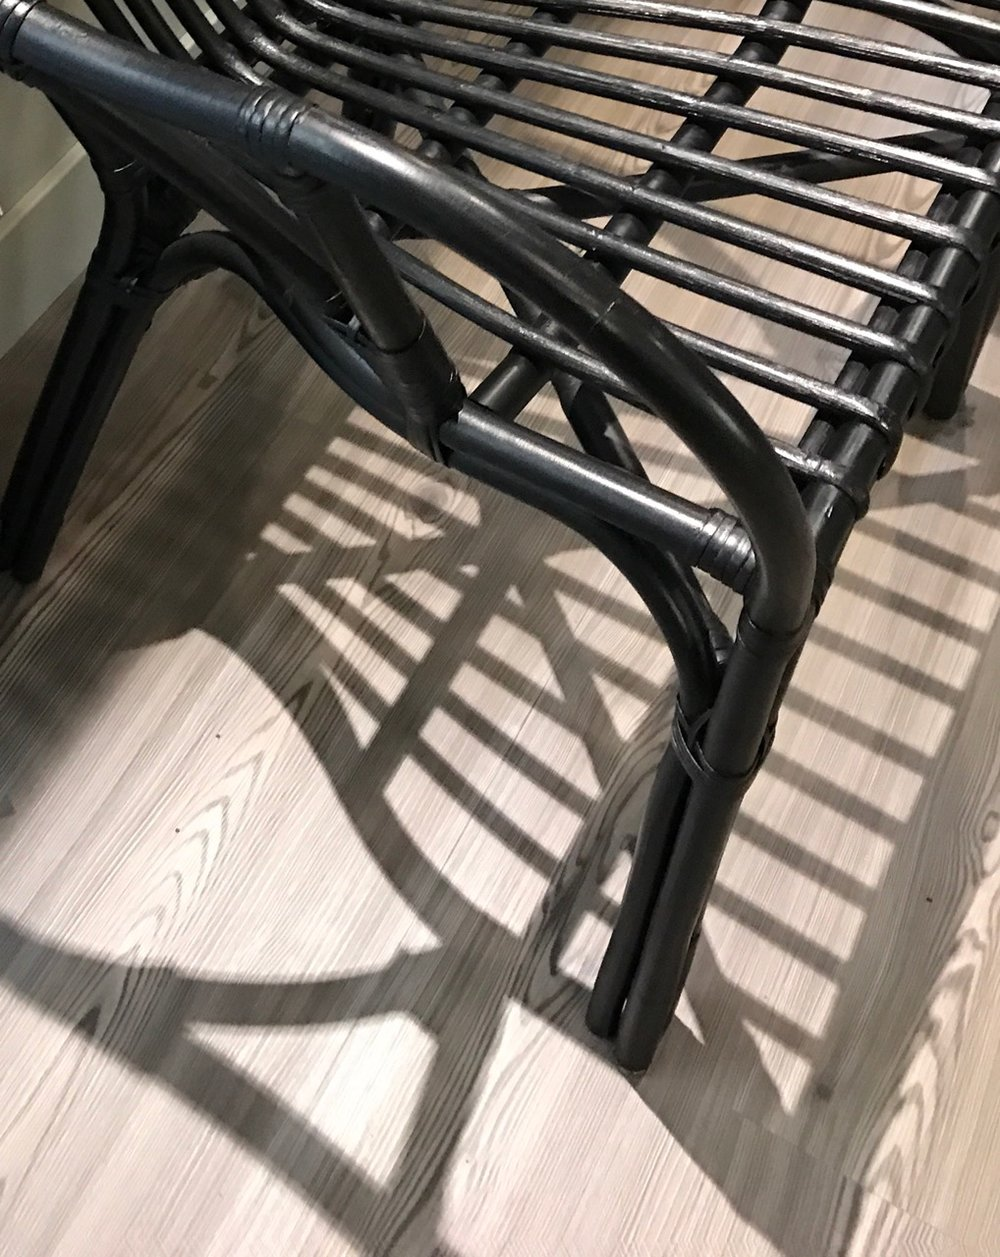 Sometimes you have to make trips down to IKEA. I unashamedly admit that when I do, I always spy some eye candy! These black rattan chairs are adorable, and if I had a place for them I'd snag them up in a heartbeat!